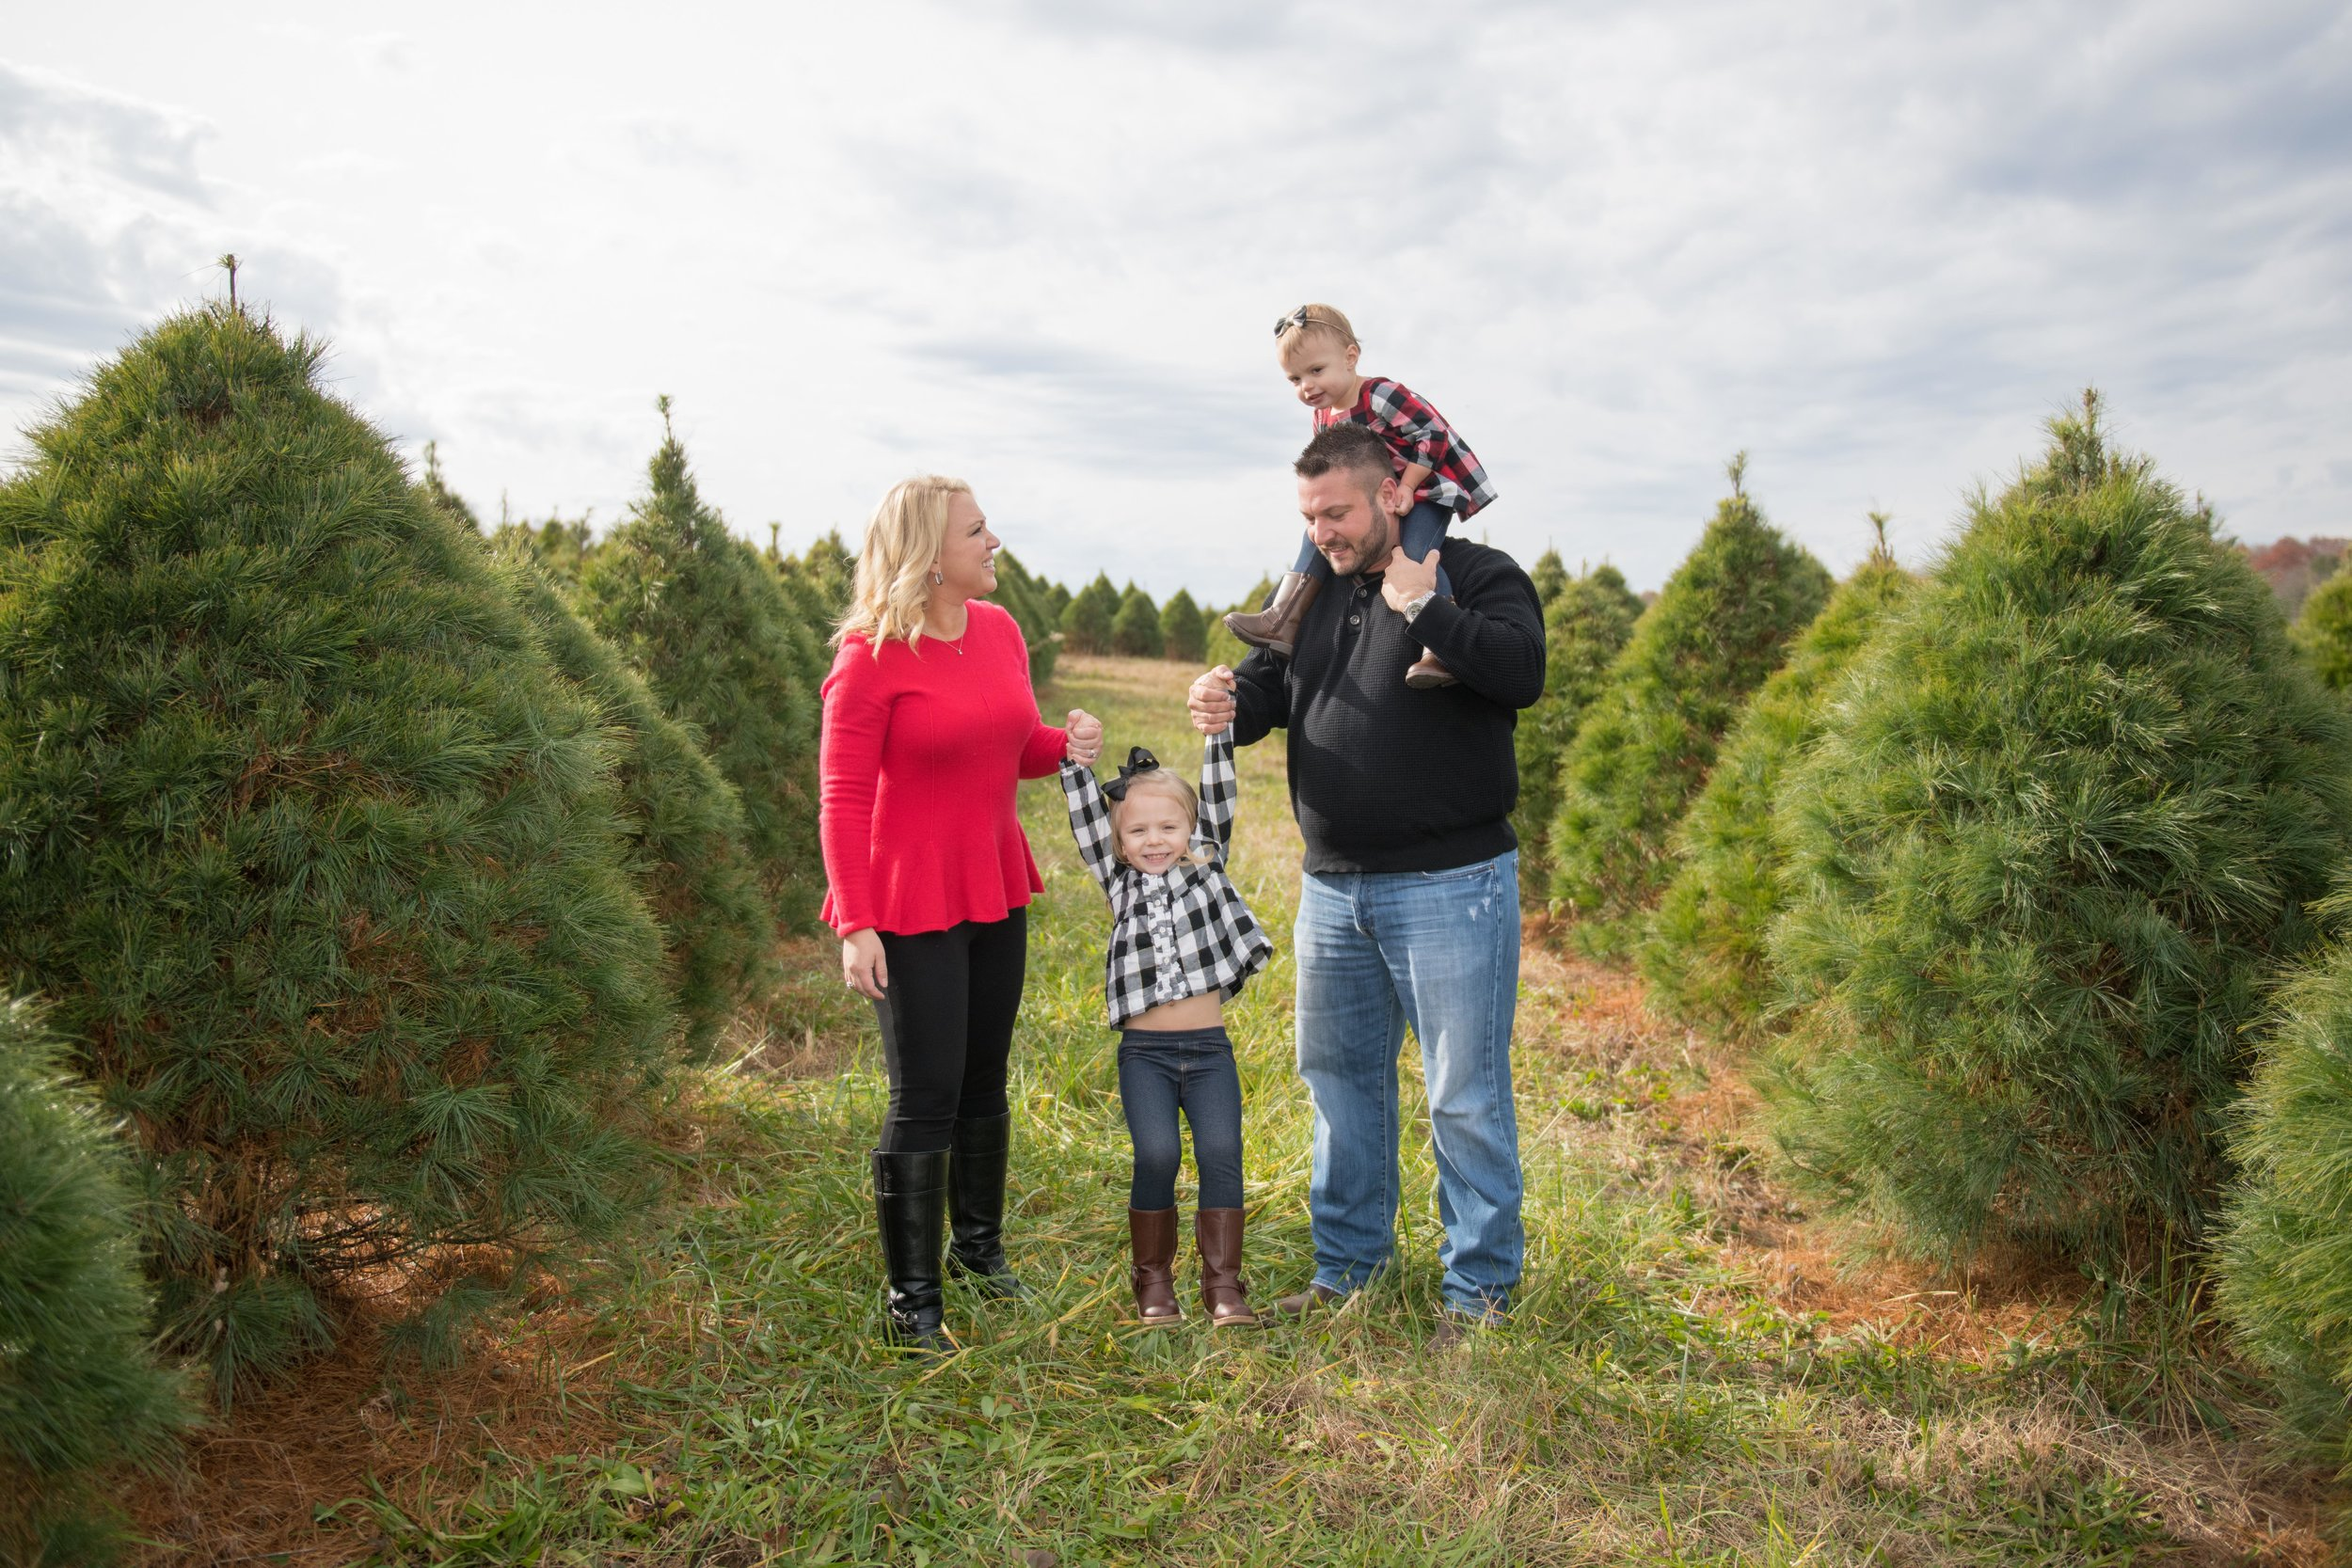 Christmas Tree Farm - Dec.1, 7-8 - Experience the magic of rows and rows of Christmas trees at this beautiful tree farm. Your kids or fur babies will have a blast running the endless rows of magical Christmas trees, trying to find the perfect tree.